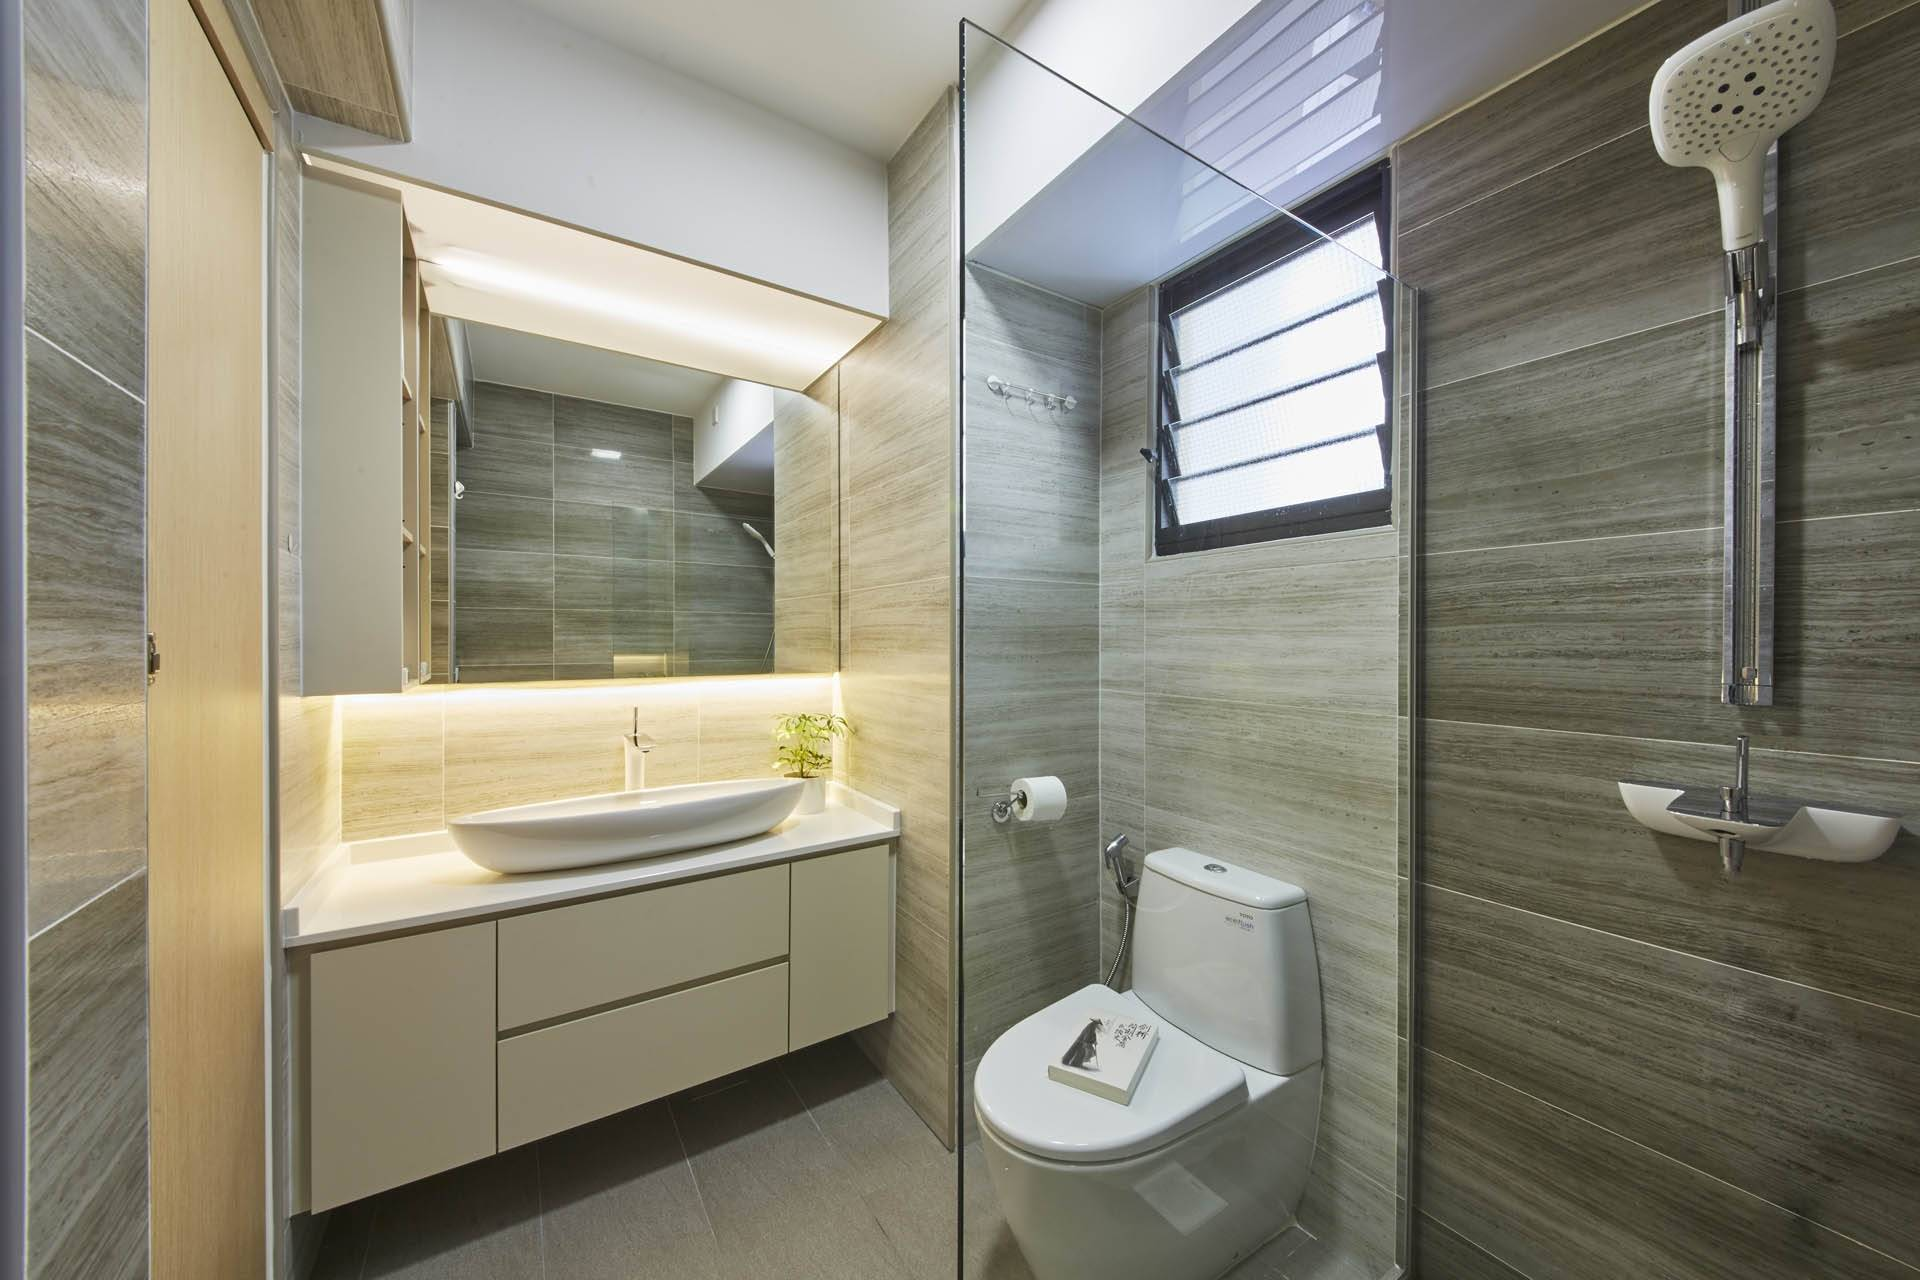 Hdb bathroom design - Bathroom design ...